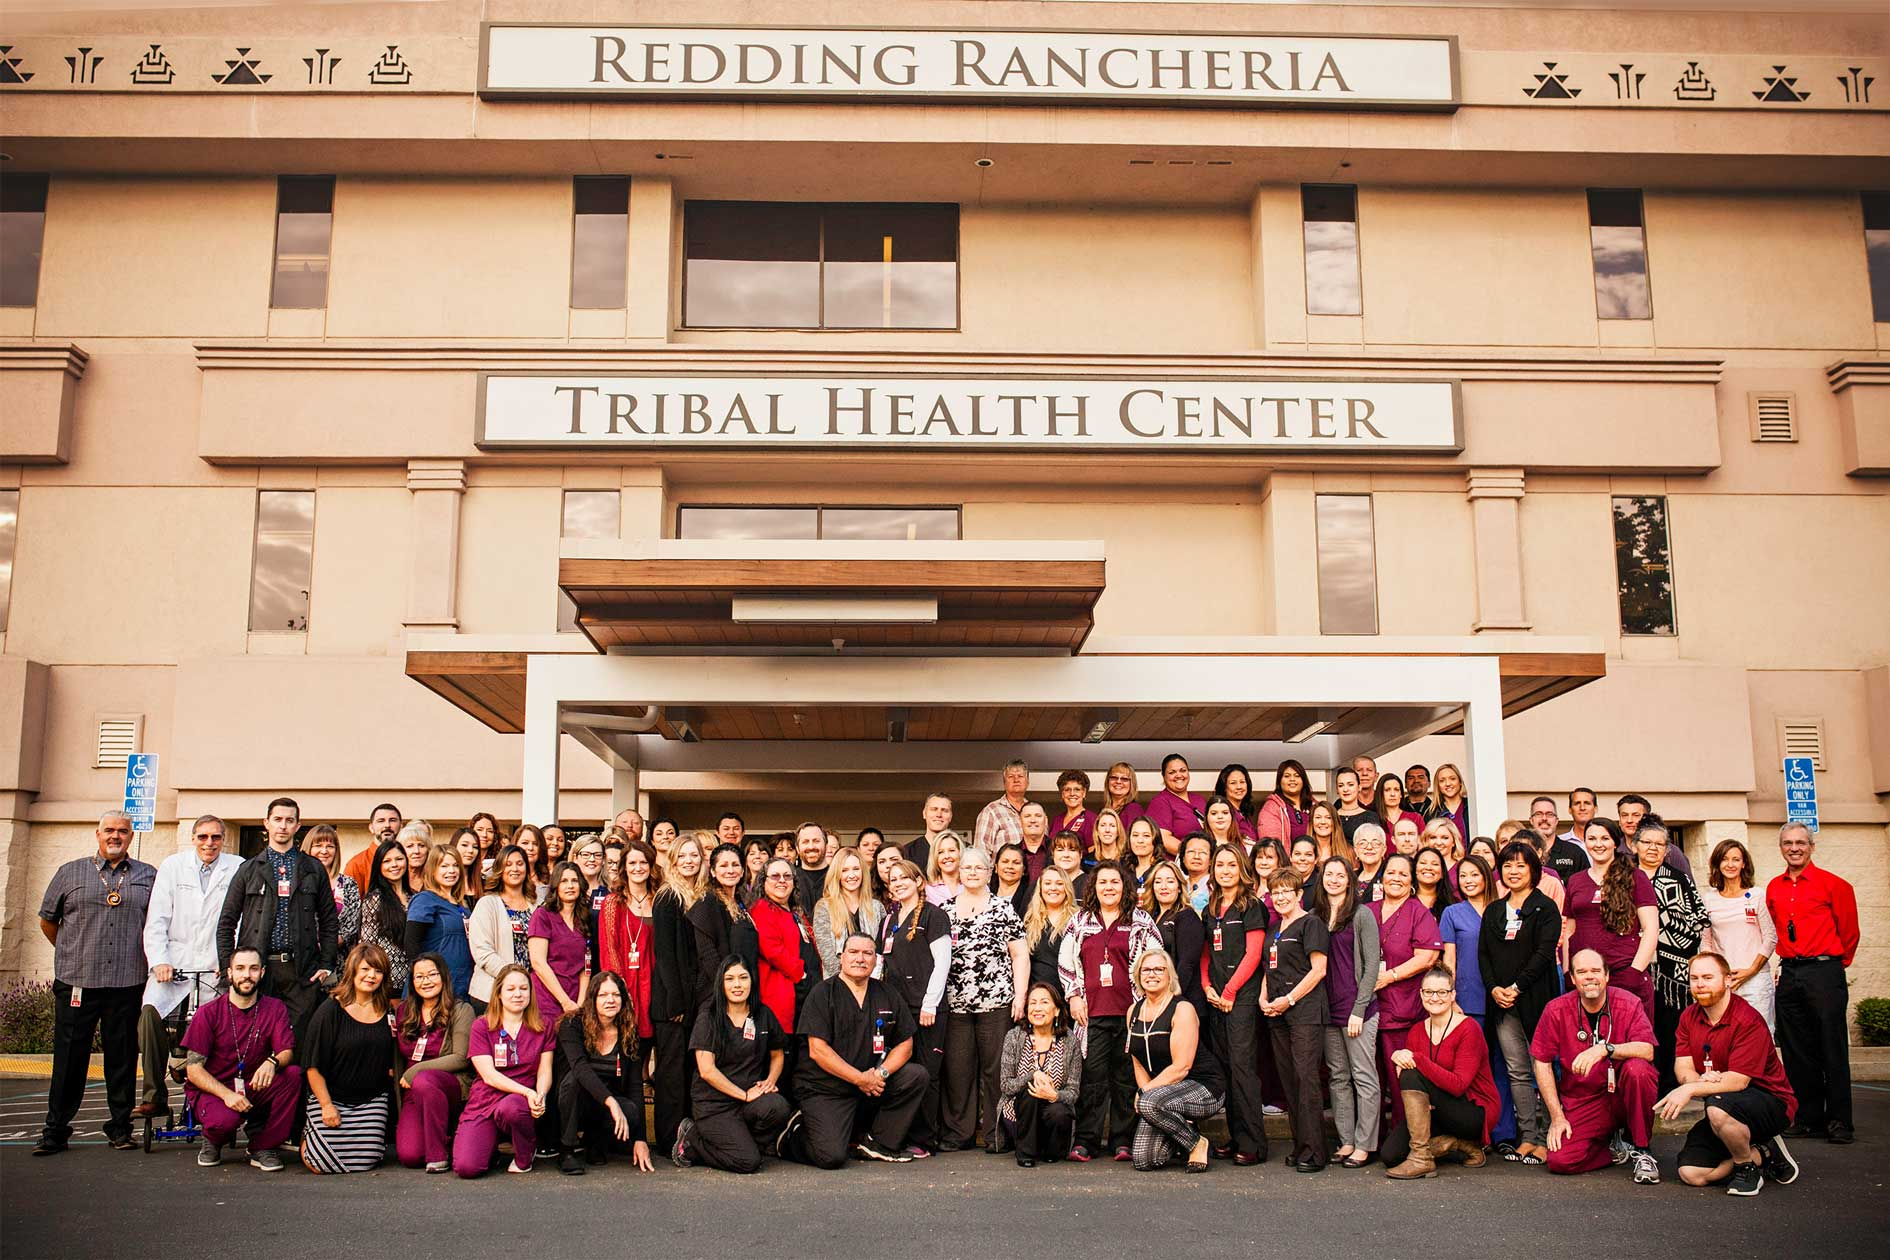 Redding Rancheria Tribal Health Center